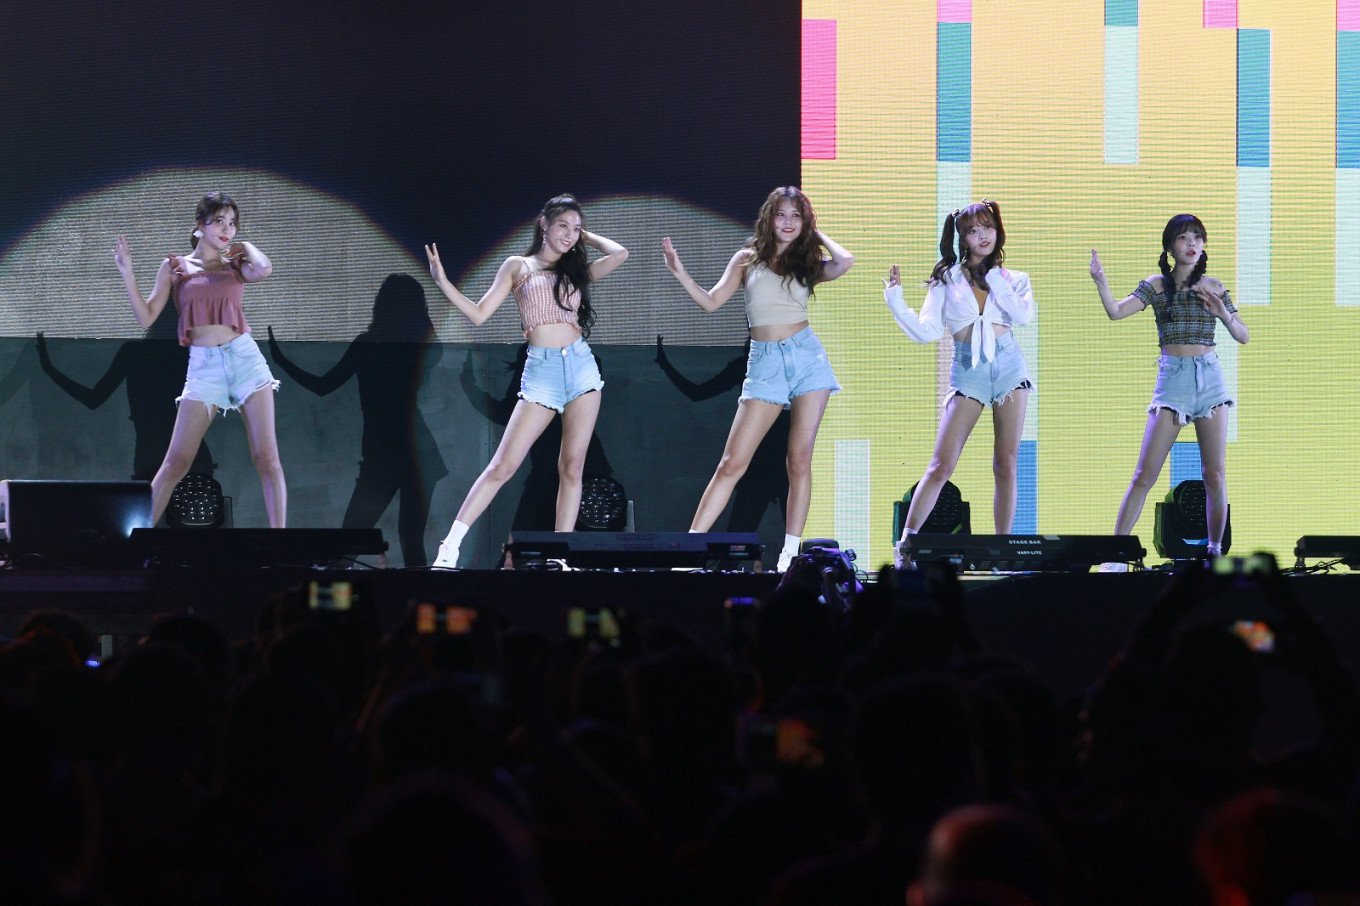 K-pop stars expose personal conflict in social media - The Jakarta Post - Jakarta Post